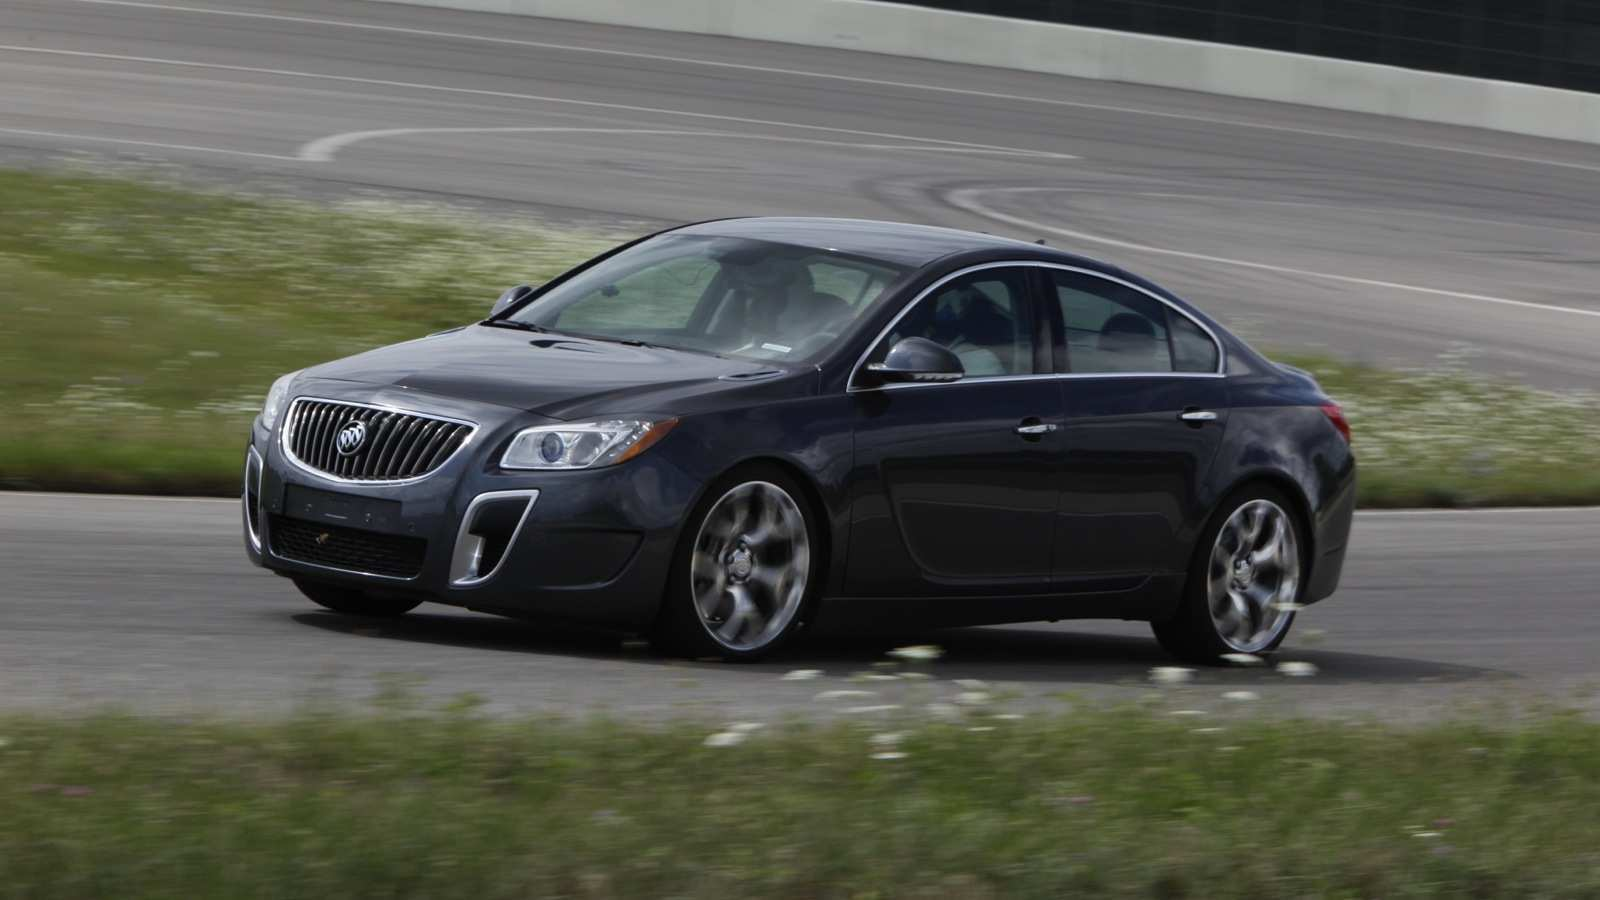 35 The Best 2020 Buick Regal Gs Coupe Redesign